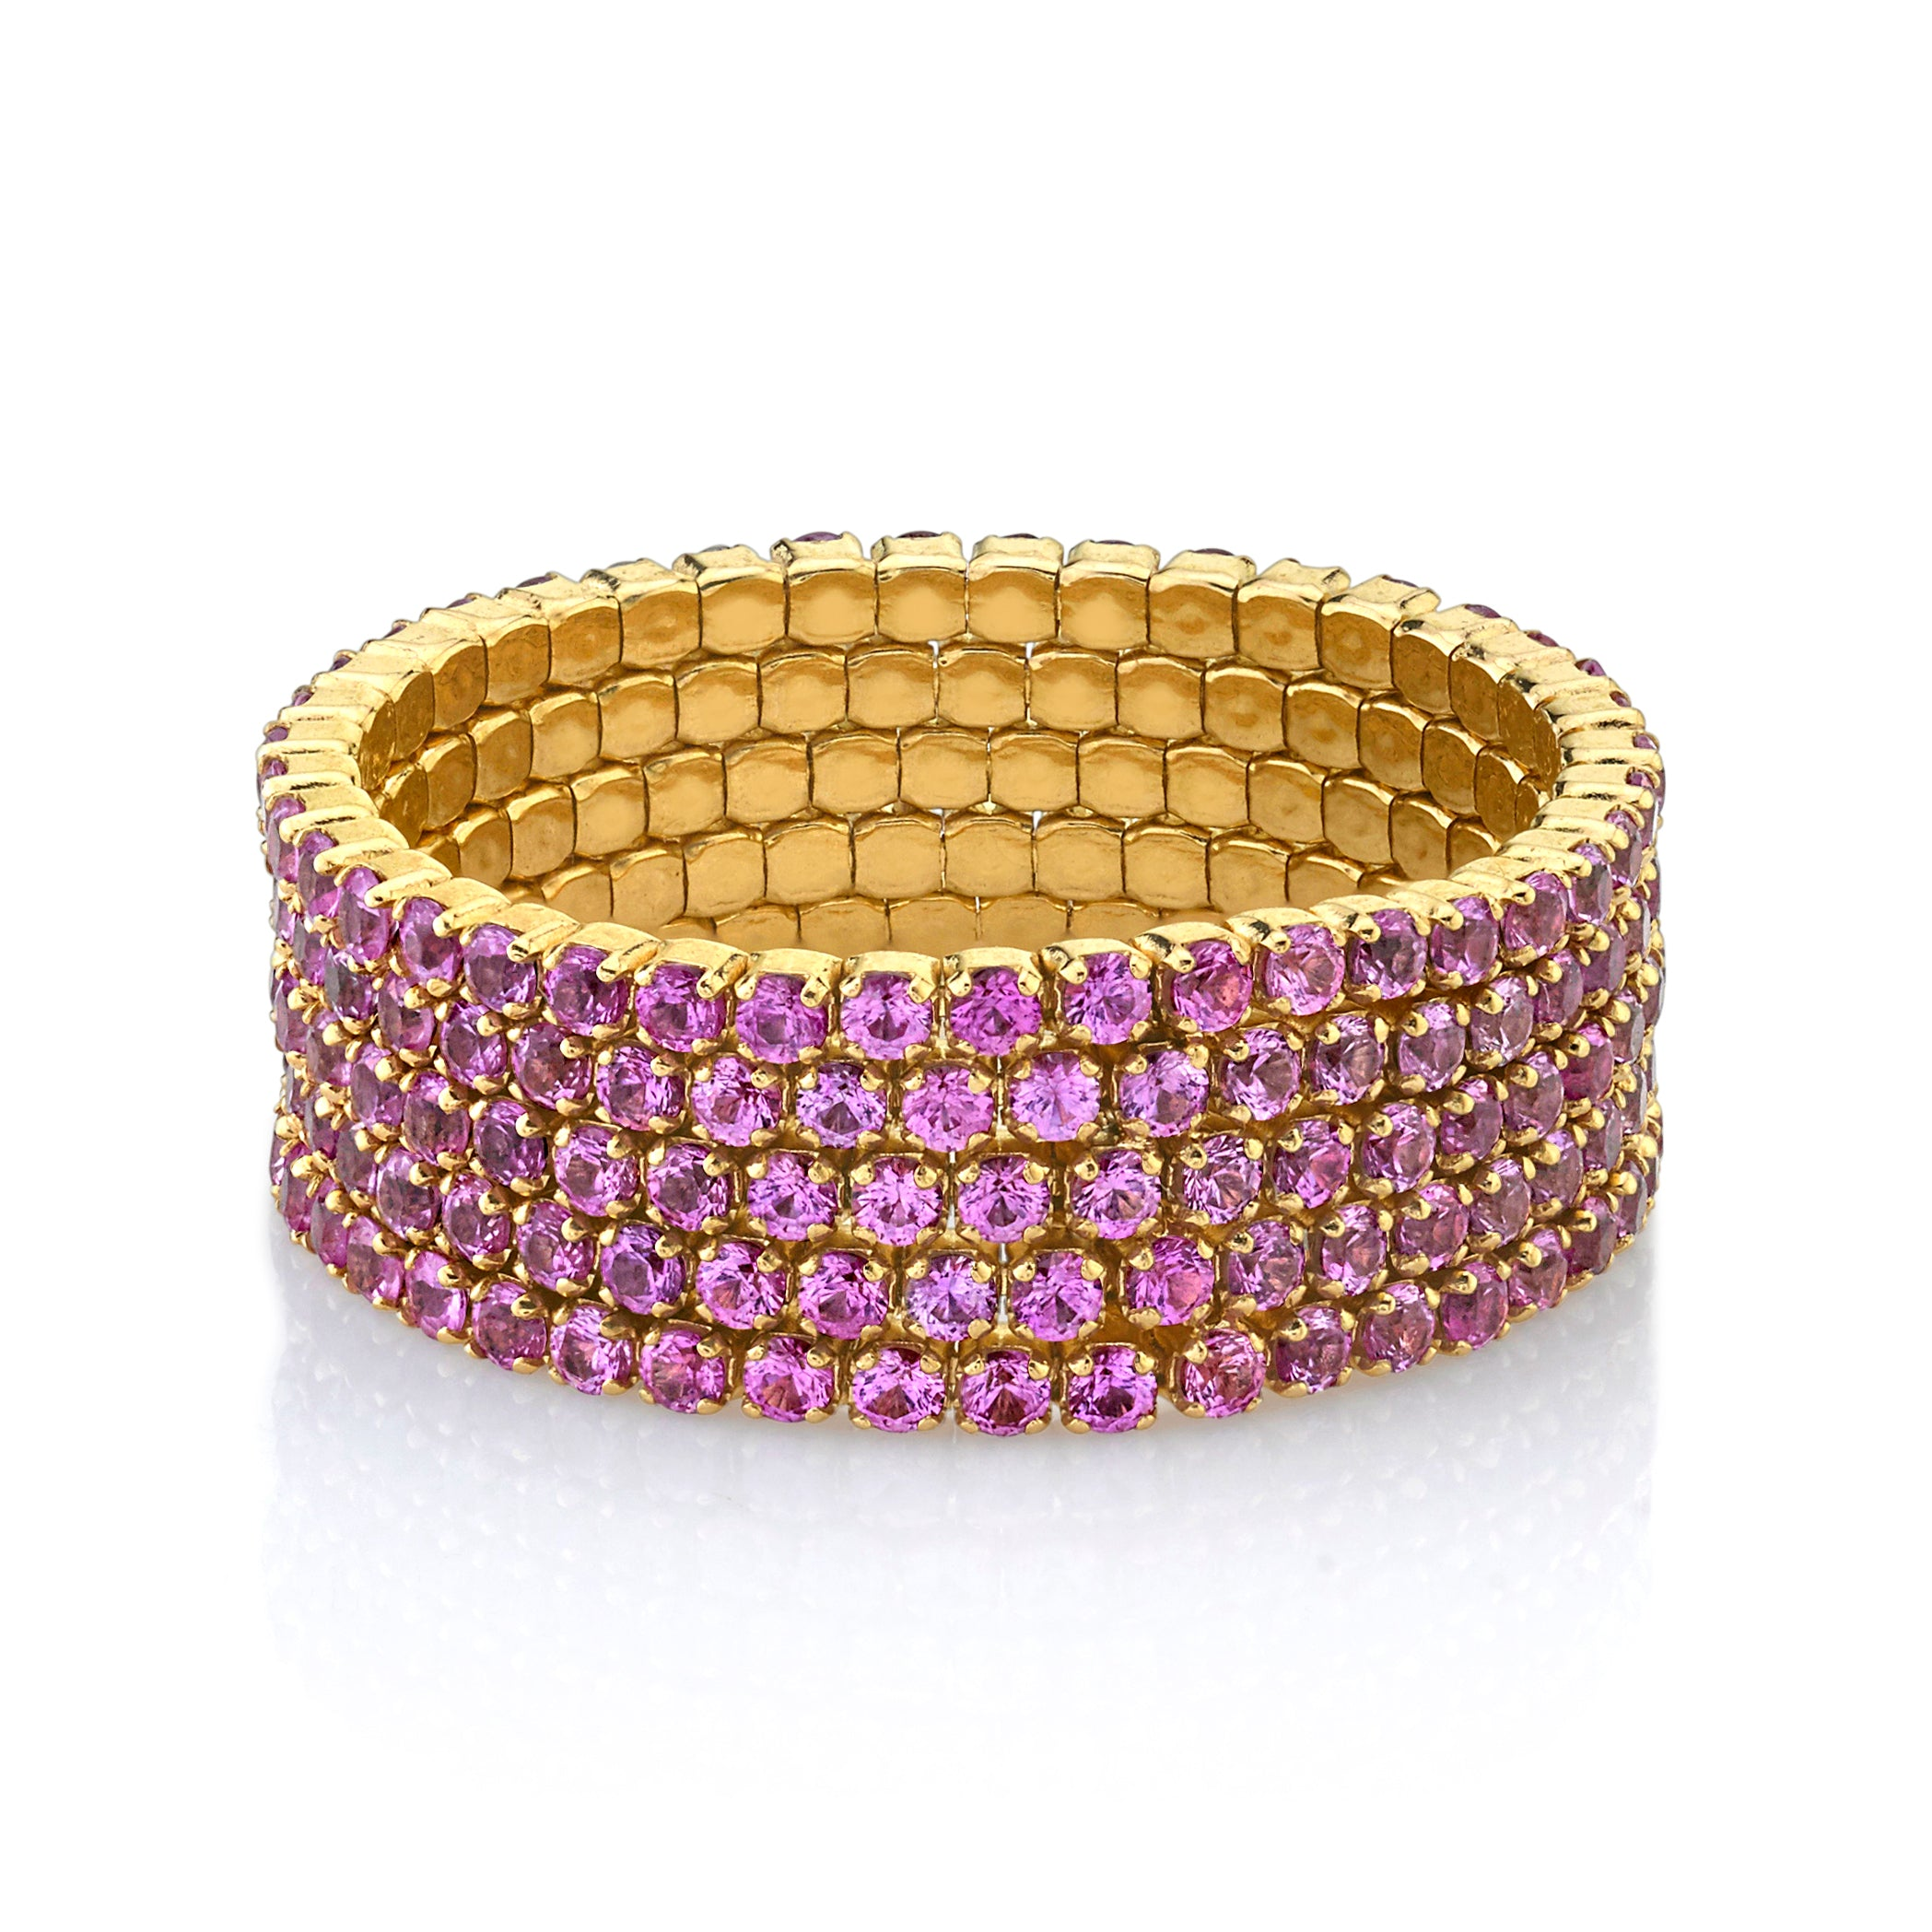 READY TO SHIP PINK SAPPHIRE 5 THREAD STACK RING